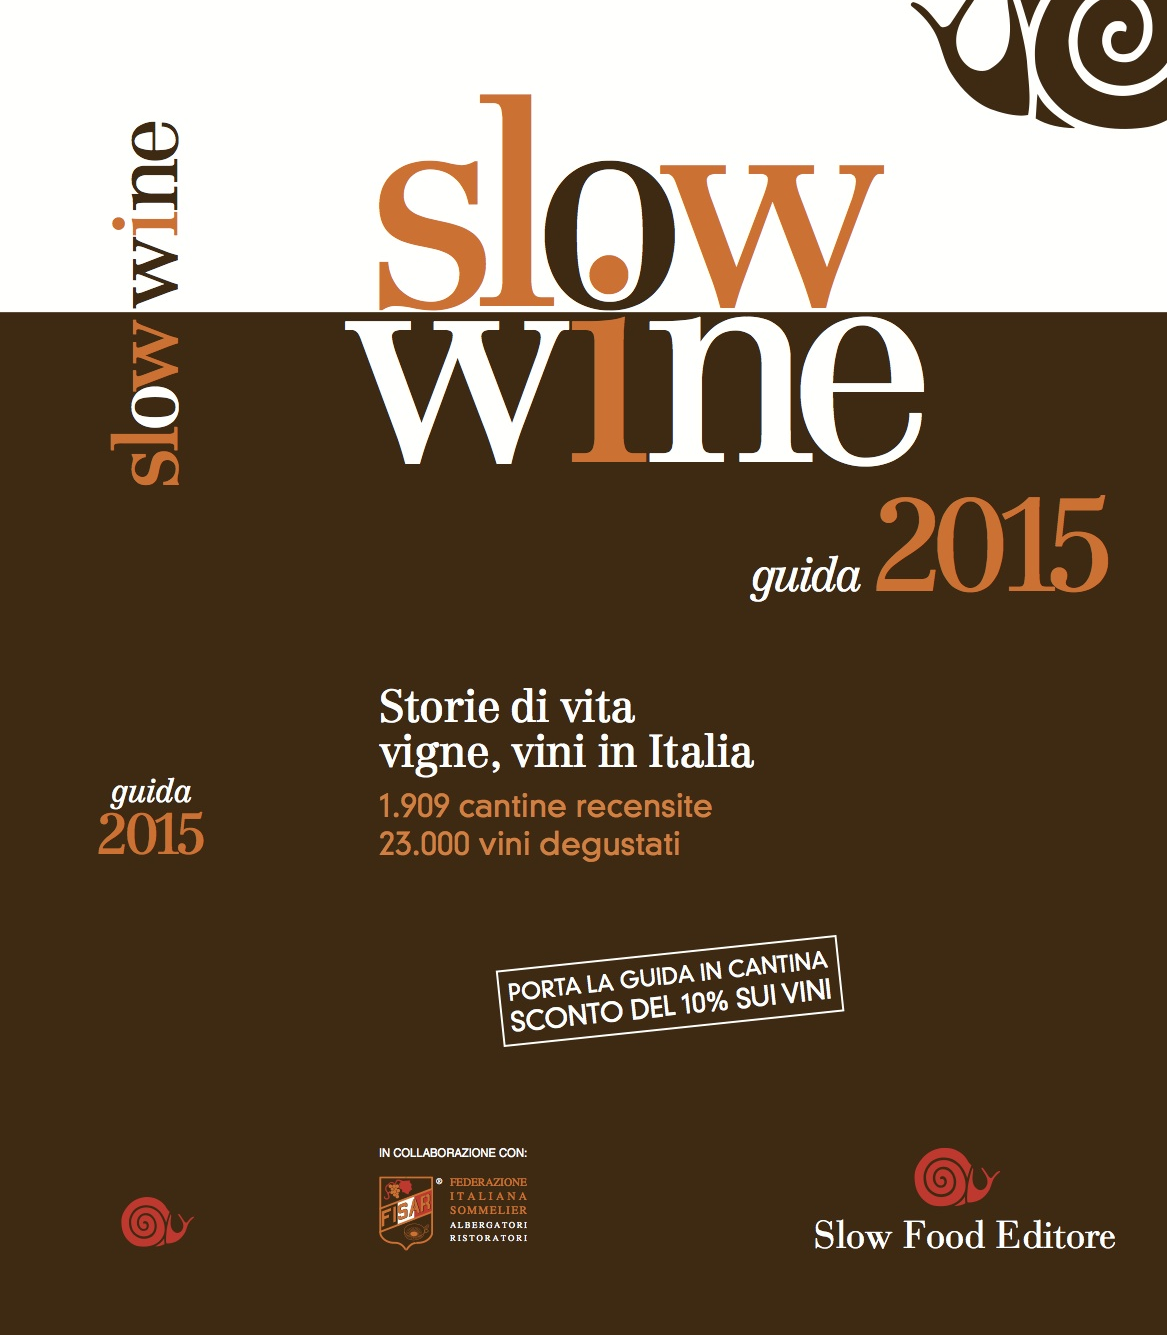 Gattinara 2010 – Vino Slow 2015